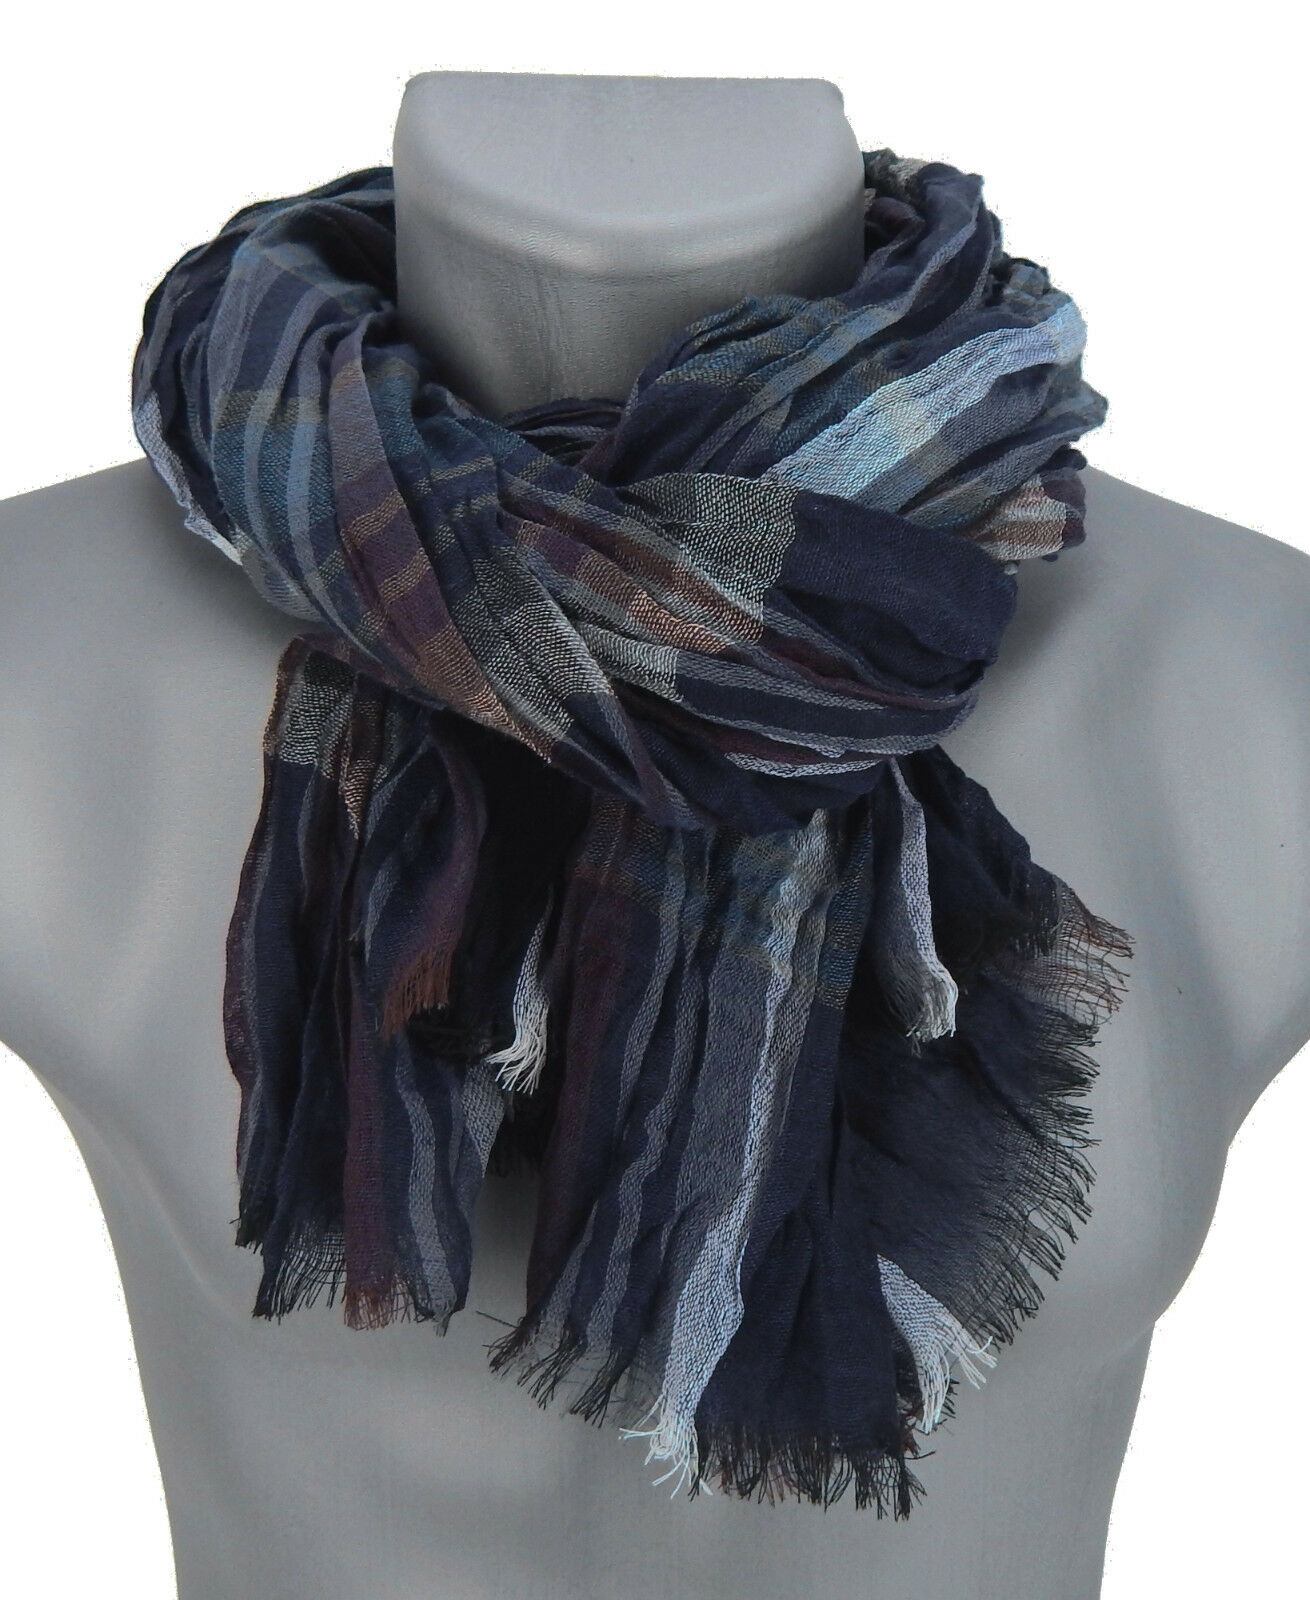 Men/'s Scarf Teal Brown White by Ella Jonte Scarf 100/% Viscose New Arrival Scarf